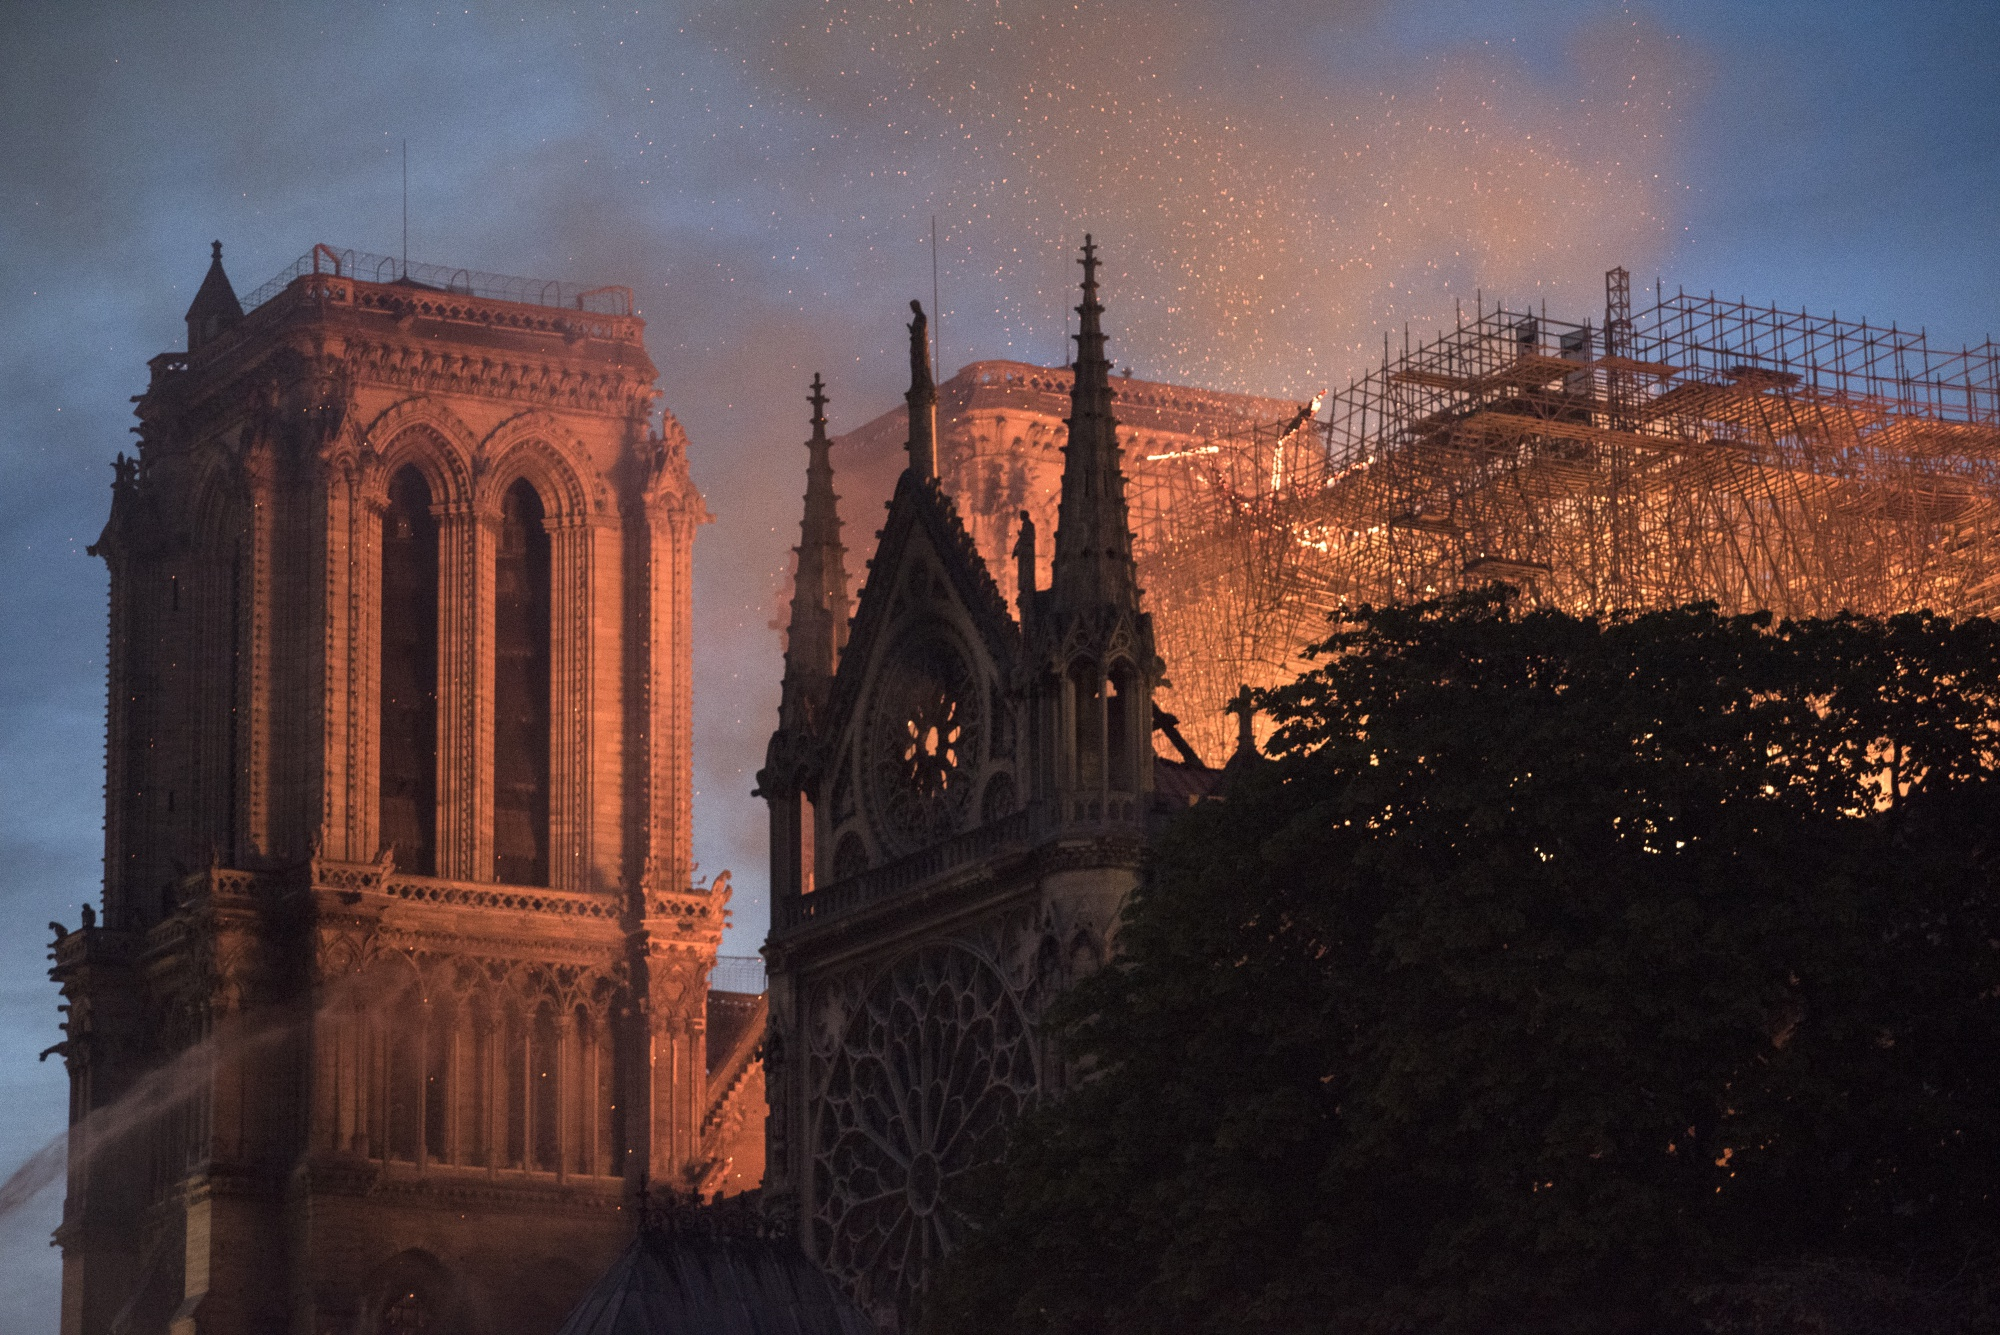 Flames and smoke rise from a fire at Notre-Dame Cathedral in Paris, France, on Monday, April 15, 2019